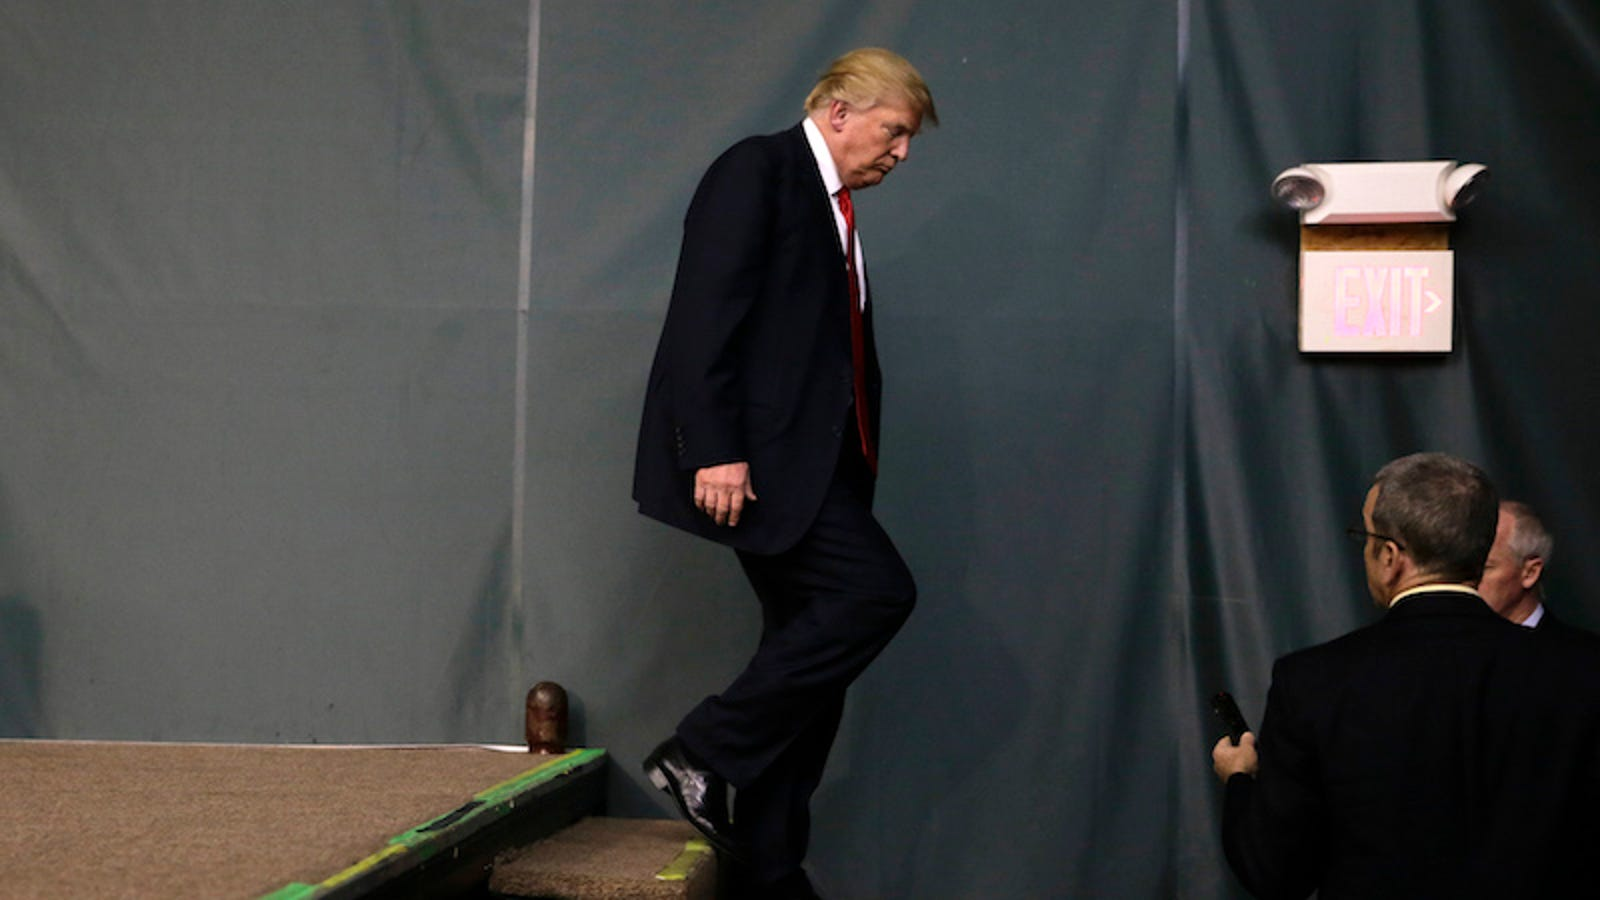 Donald Trump Can Absolutely Walk Up and Down the Stairs Like a Big Boy